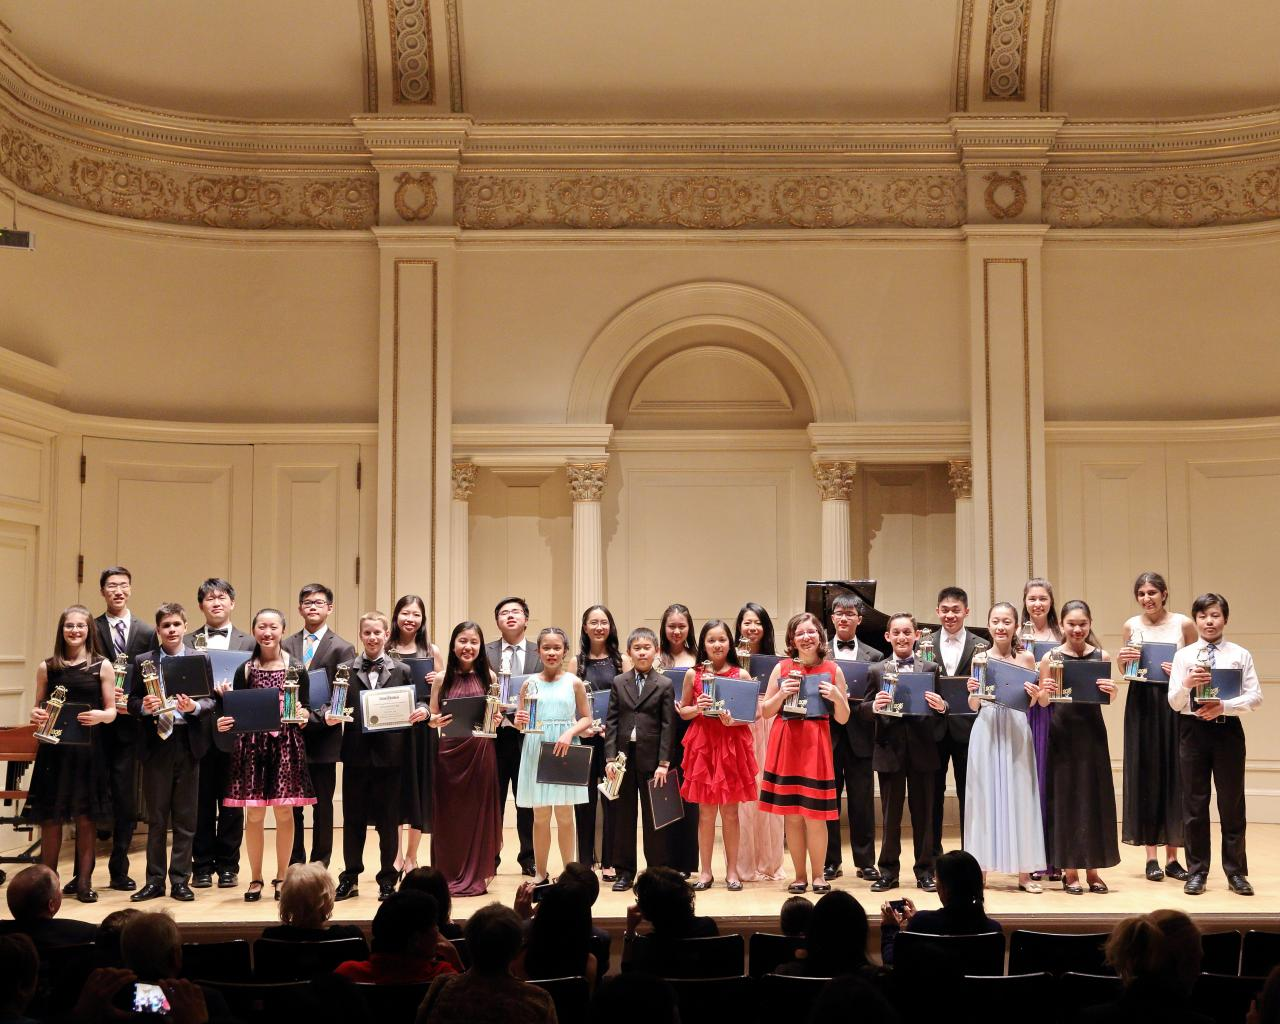 2016 1 Group_-_The_Gold_Winners_at_Carnegie_Hall_April_24_2016_01c.116171601_large.JPG